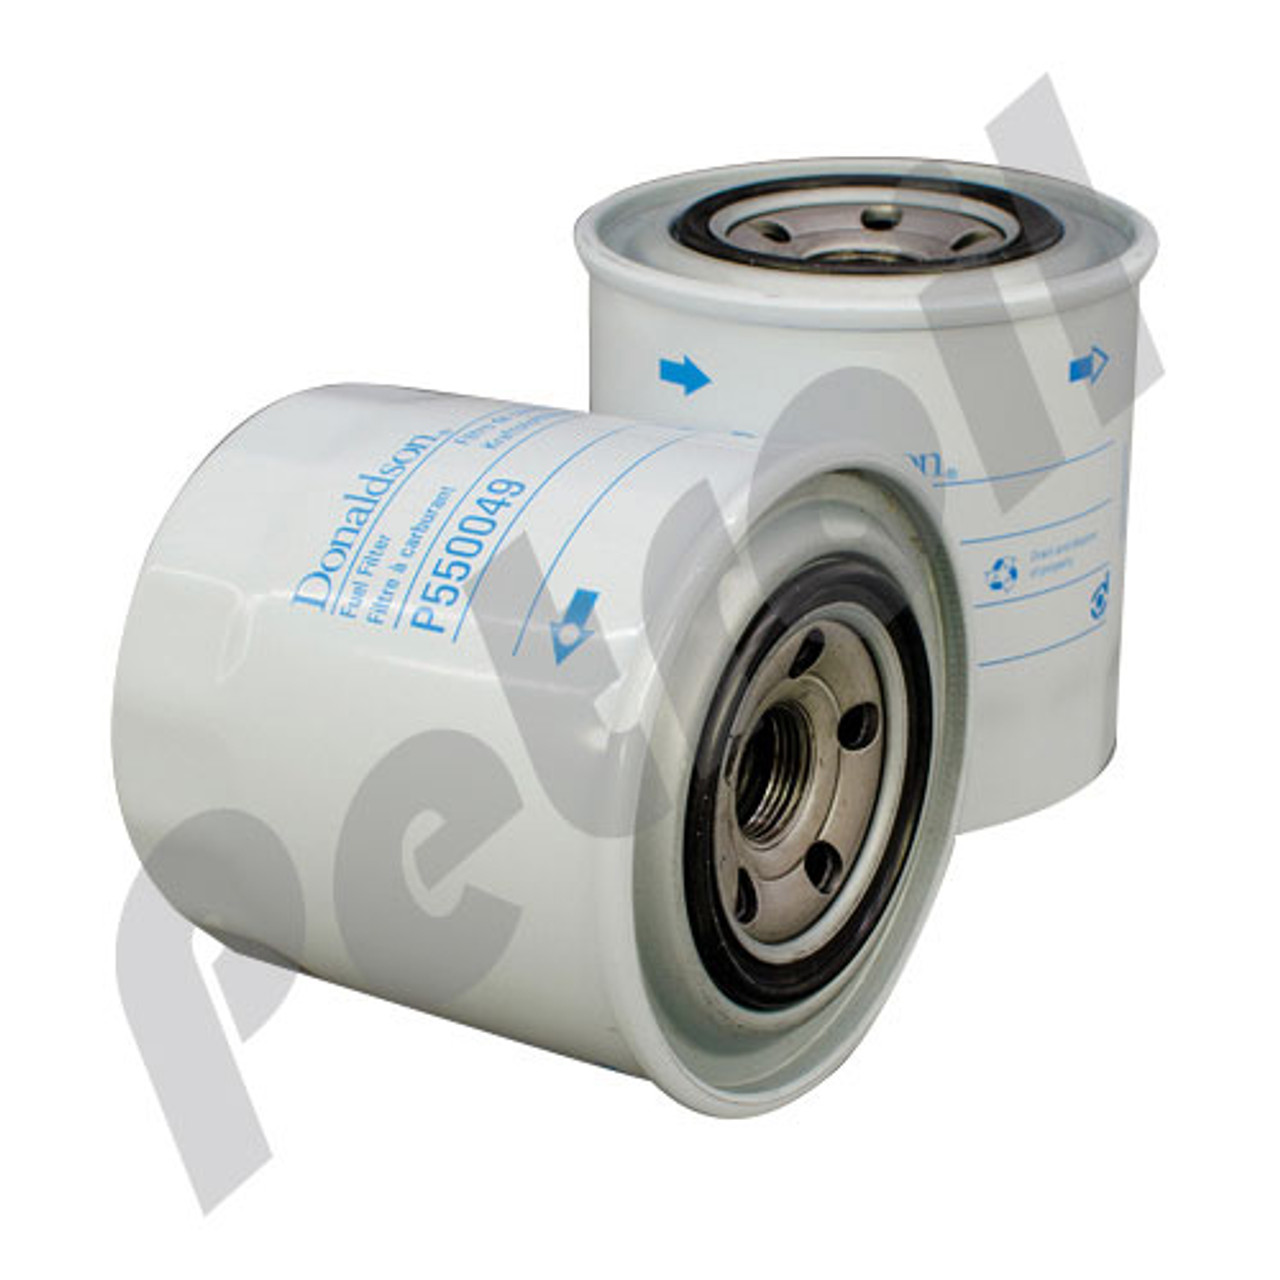 P550049 Donaldson Fuel Filter Spin On Mitsubishi Canter FE444 97-03 649TD  659TD ME016823 ME016872 FF5088 33396Petroil USA